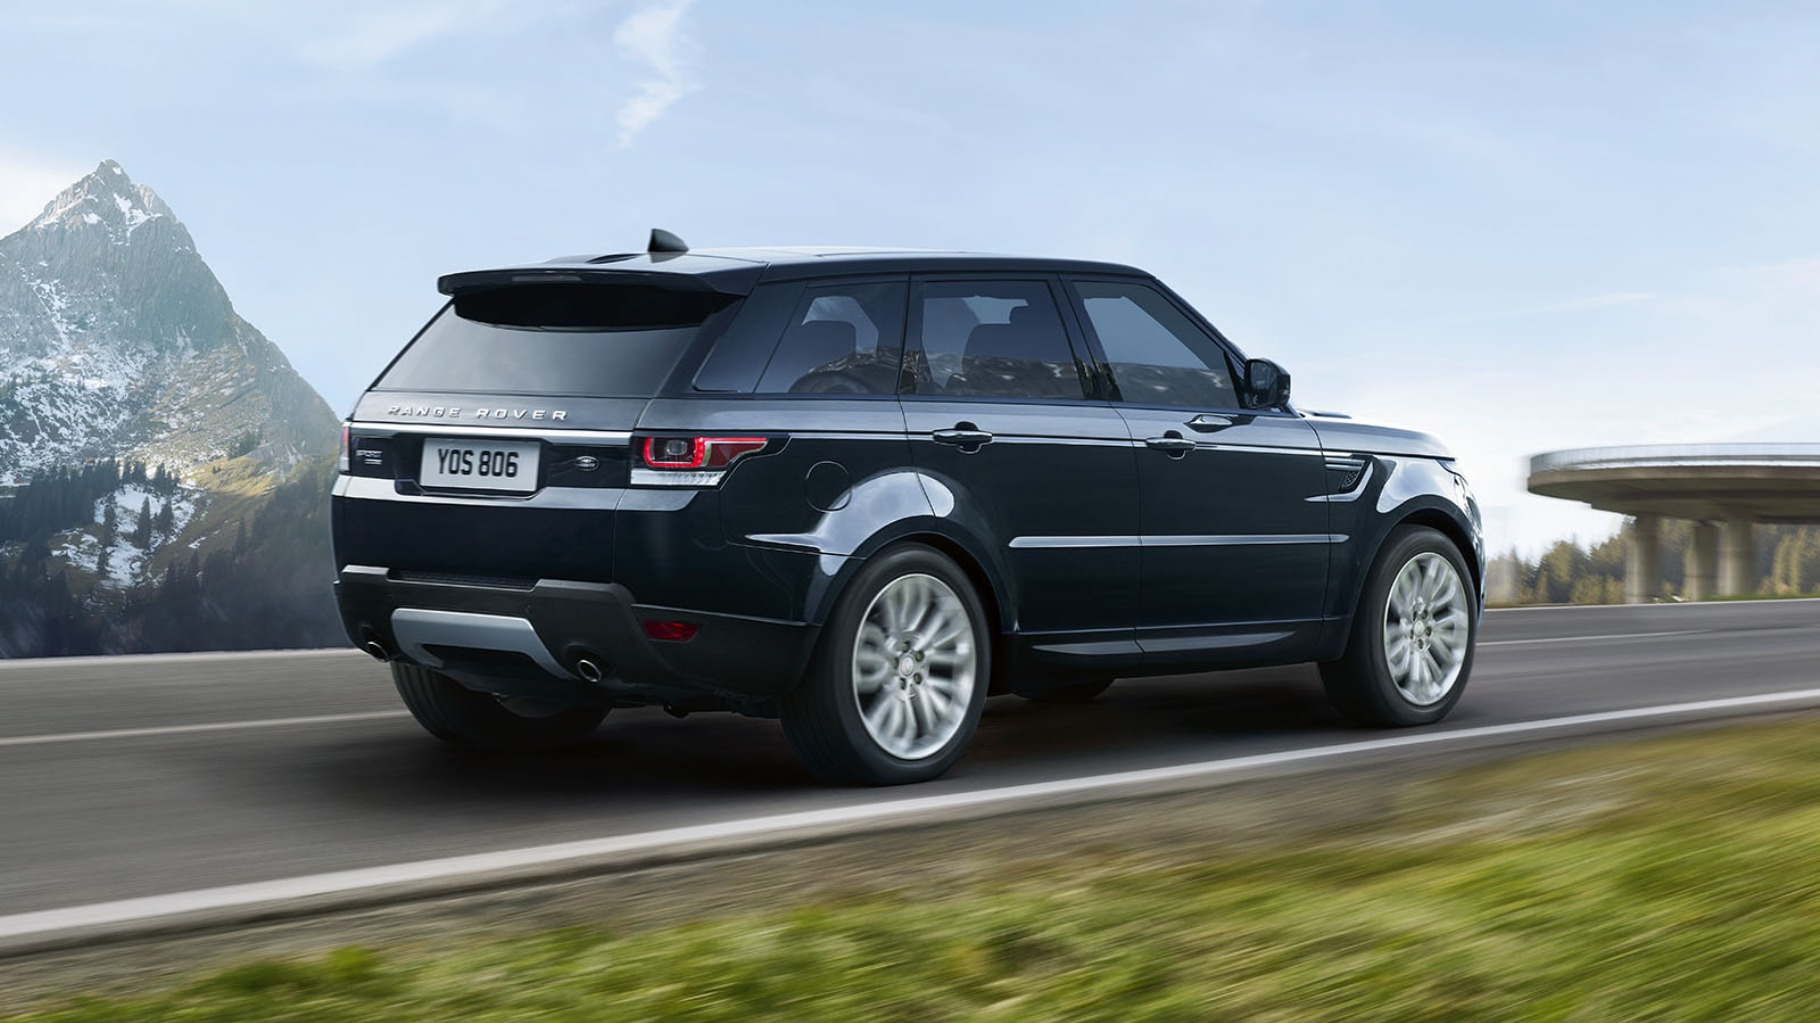 Land Rover Range Rover Sport on road